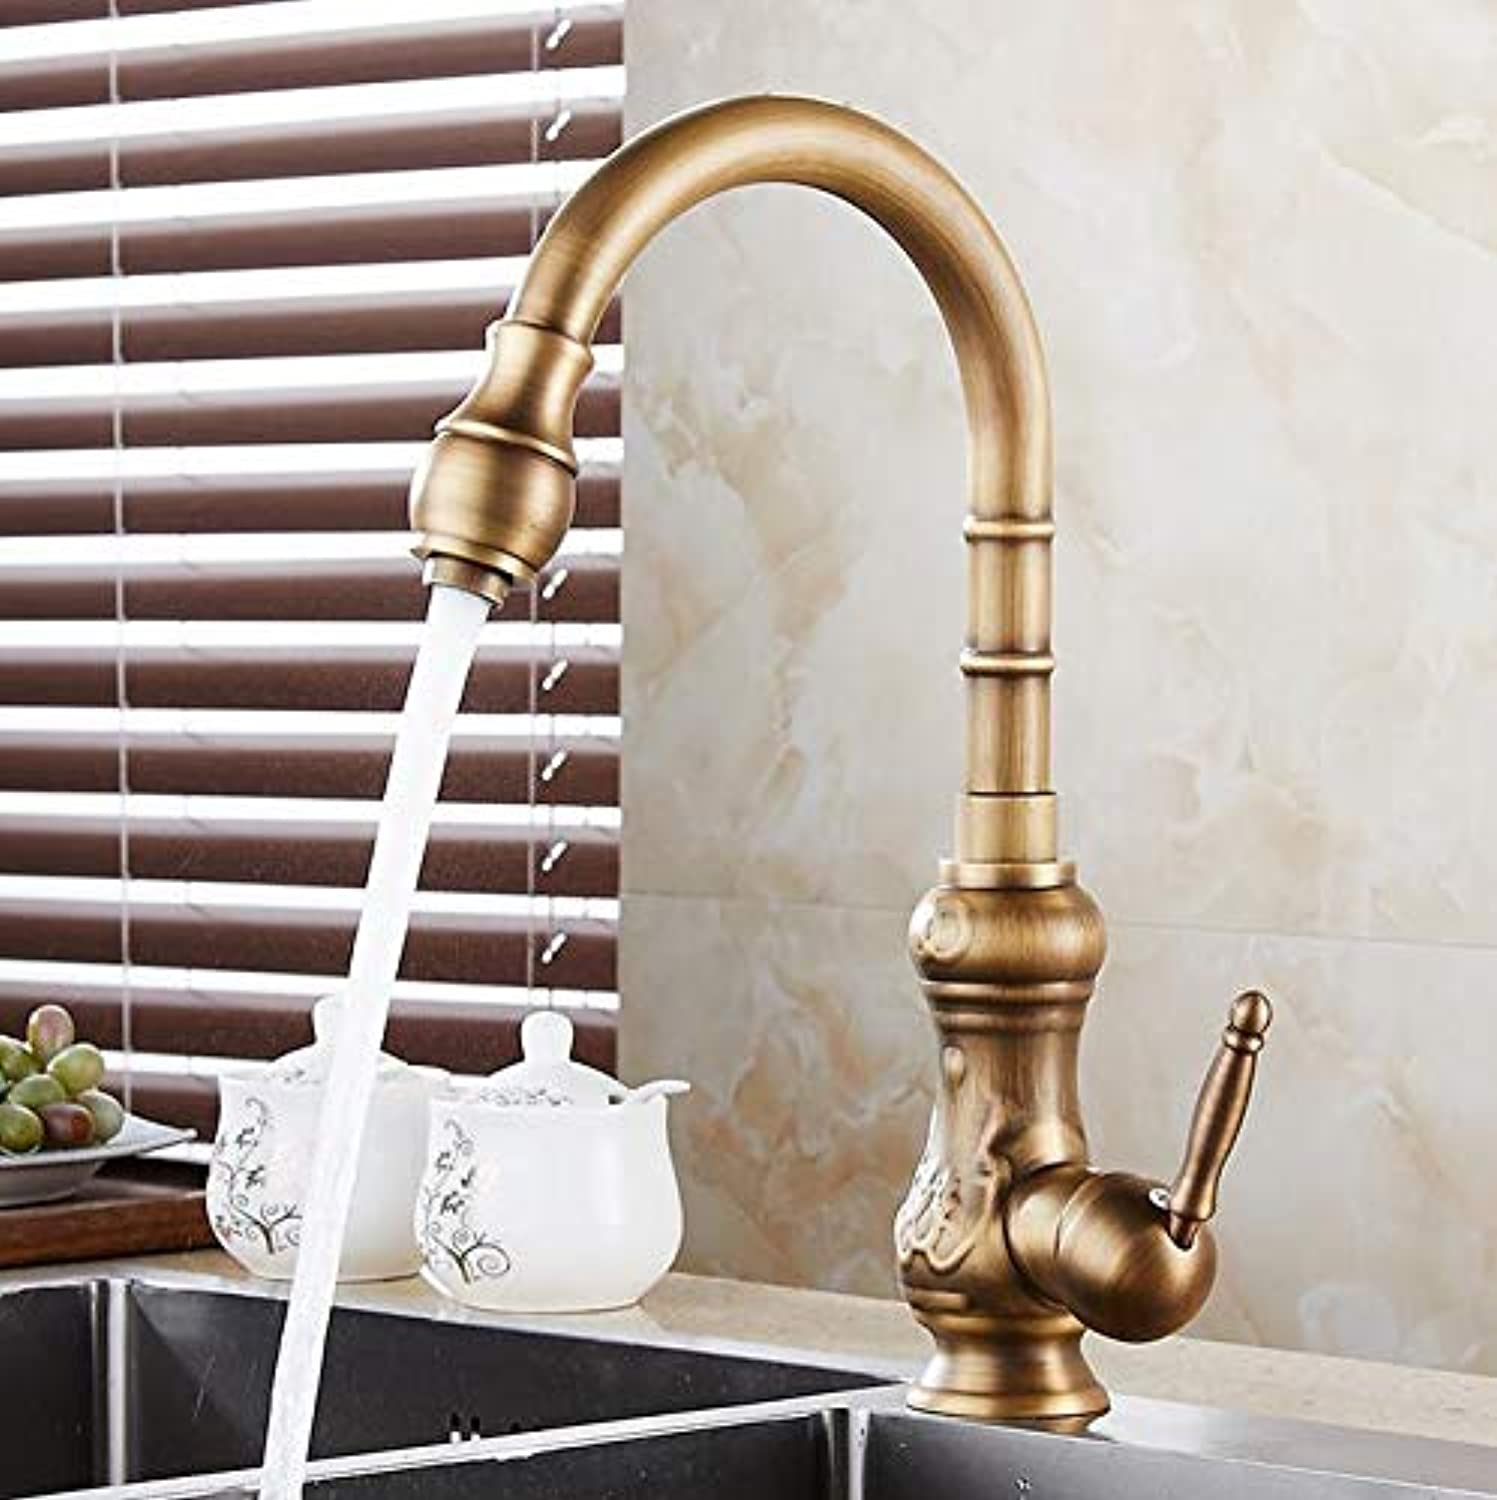 Mkkwp Kitchen Sink Faucets Solid Brass Antique Bronze Single Handle Kitchen Basin Faucets Deck Mounted Hot&Cold Water Mix Tap